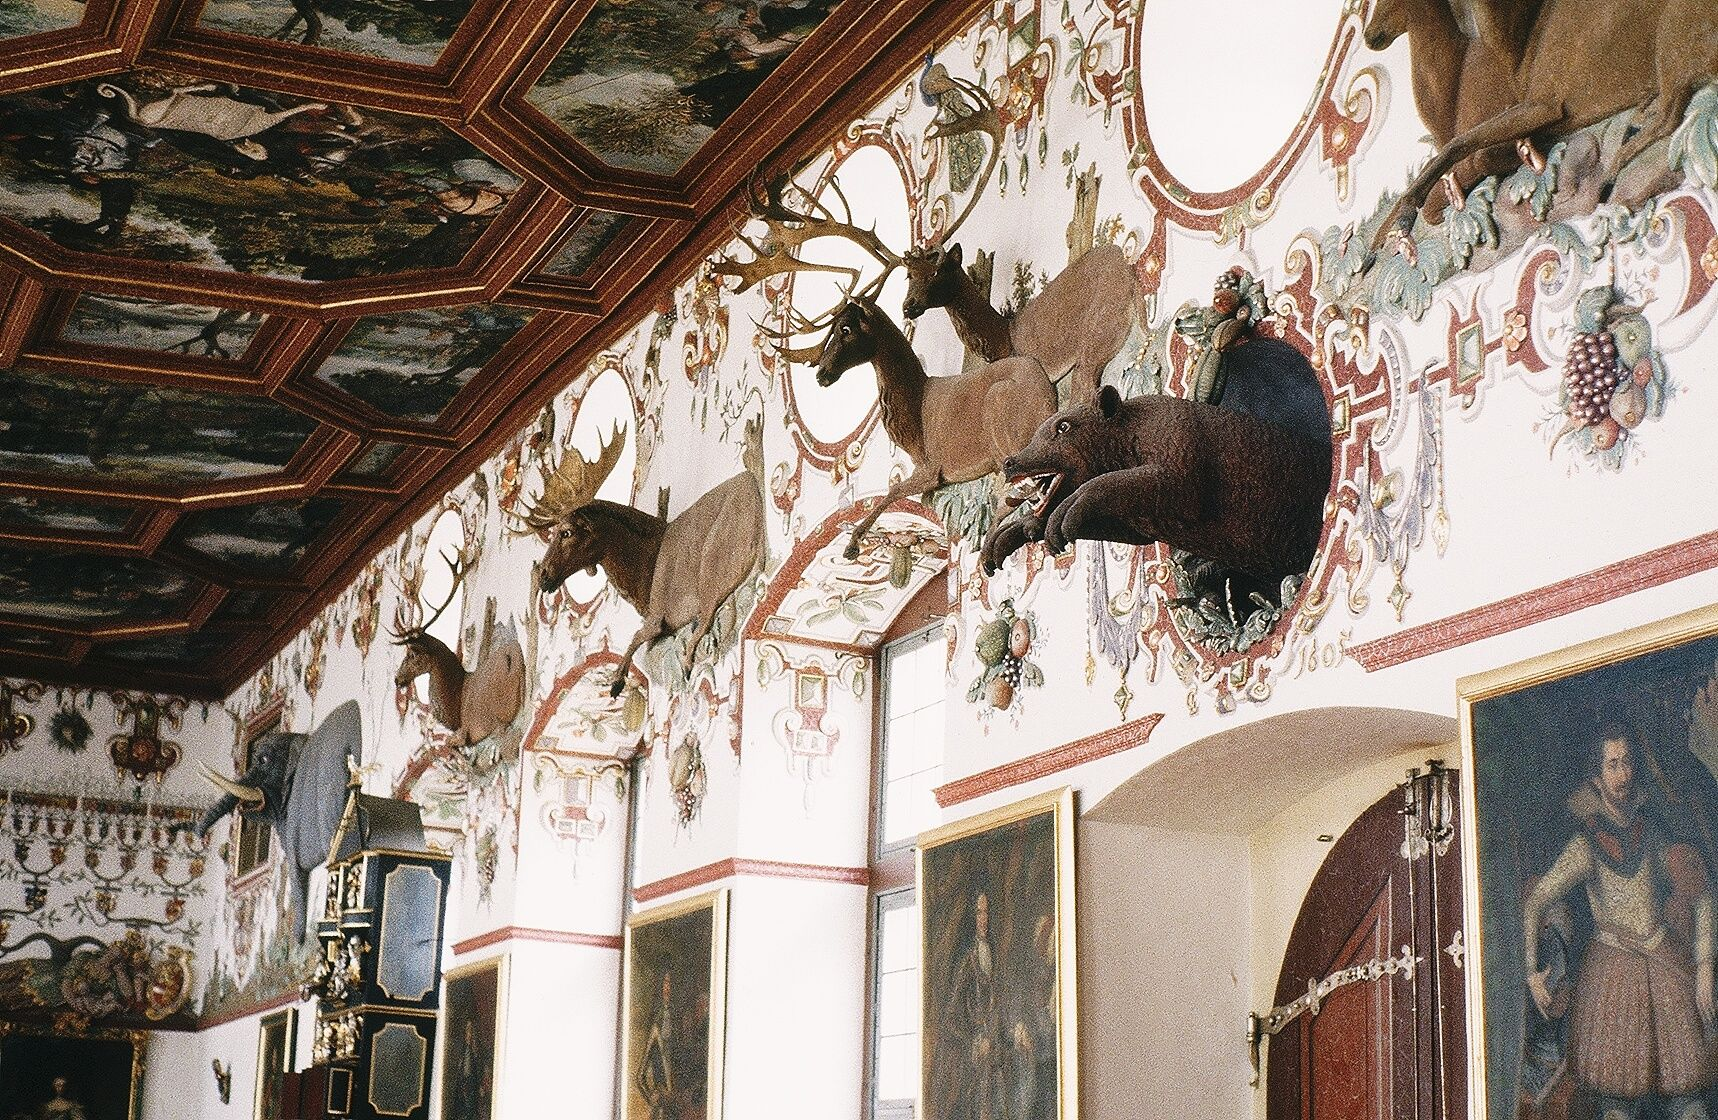 Inside the Lichtenstein Castle in Germany Swabian Alb ...